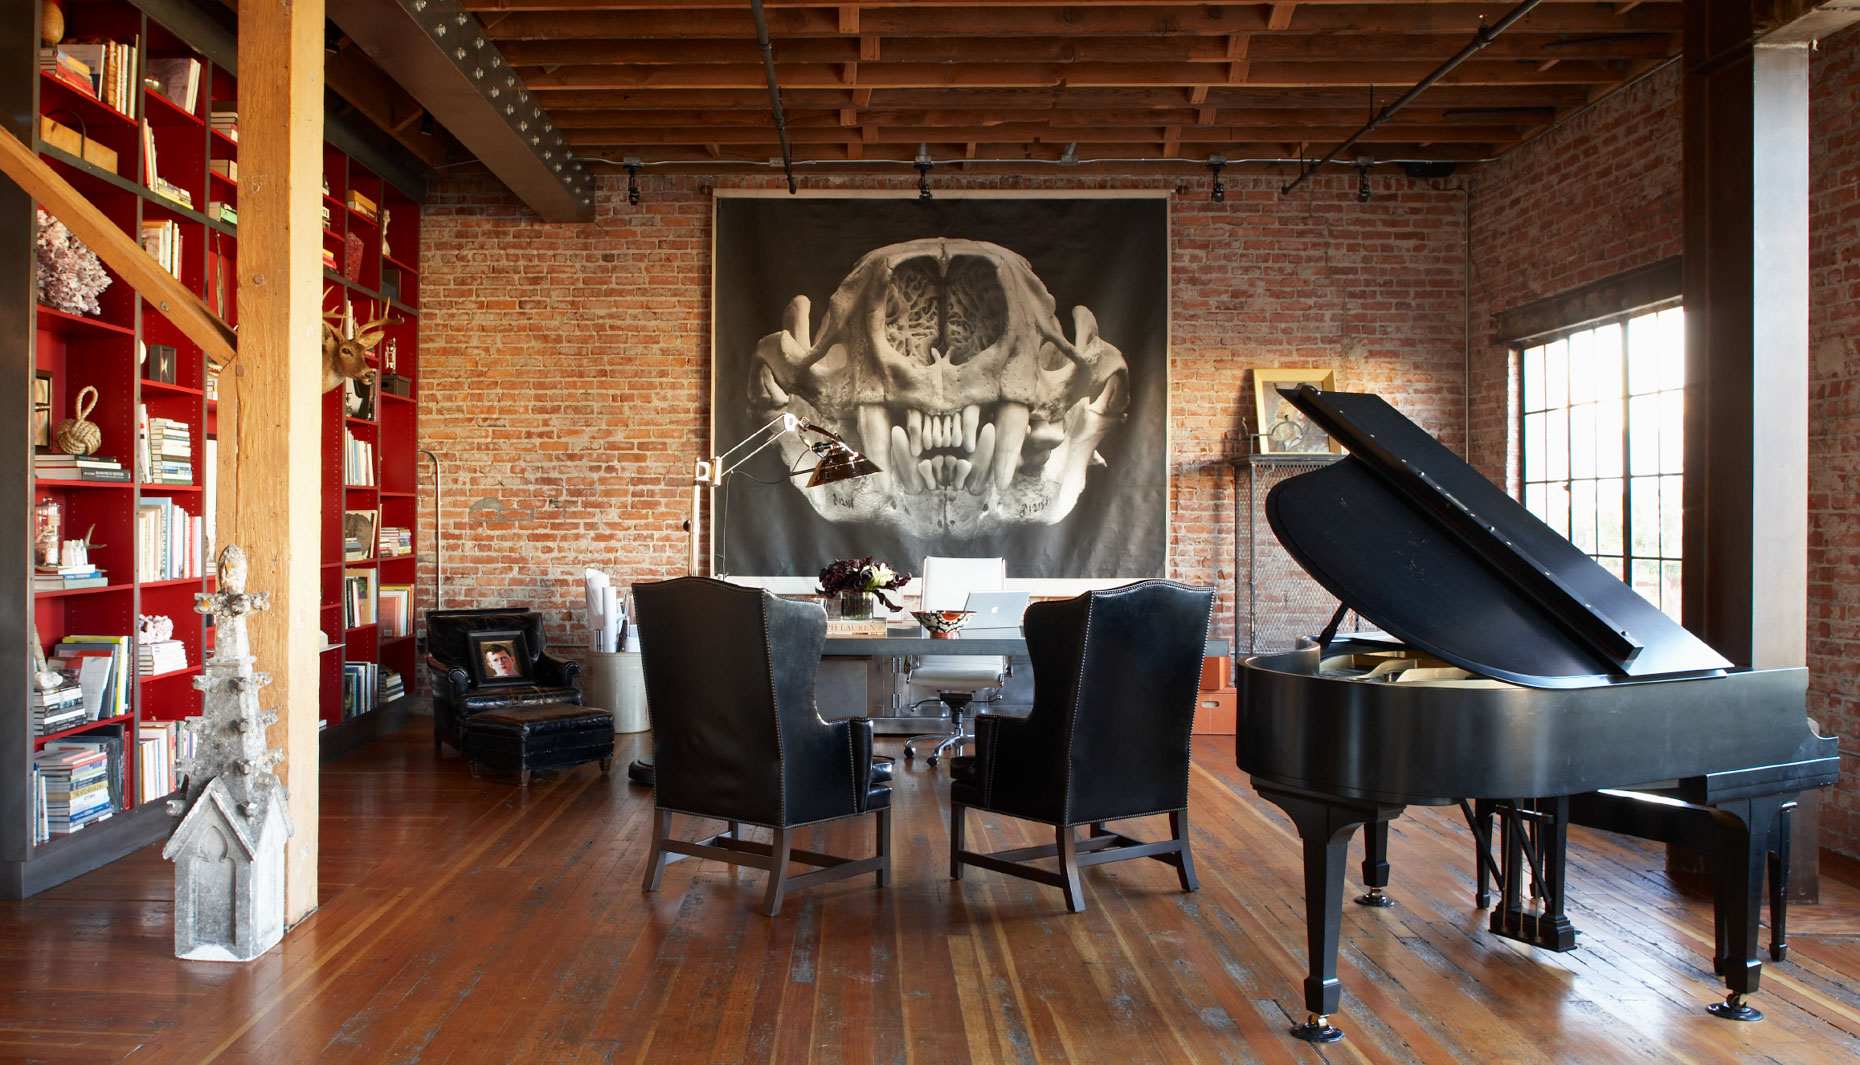 living room and office space with grand piano and large hanging black and white photograph on red brick wall